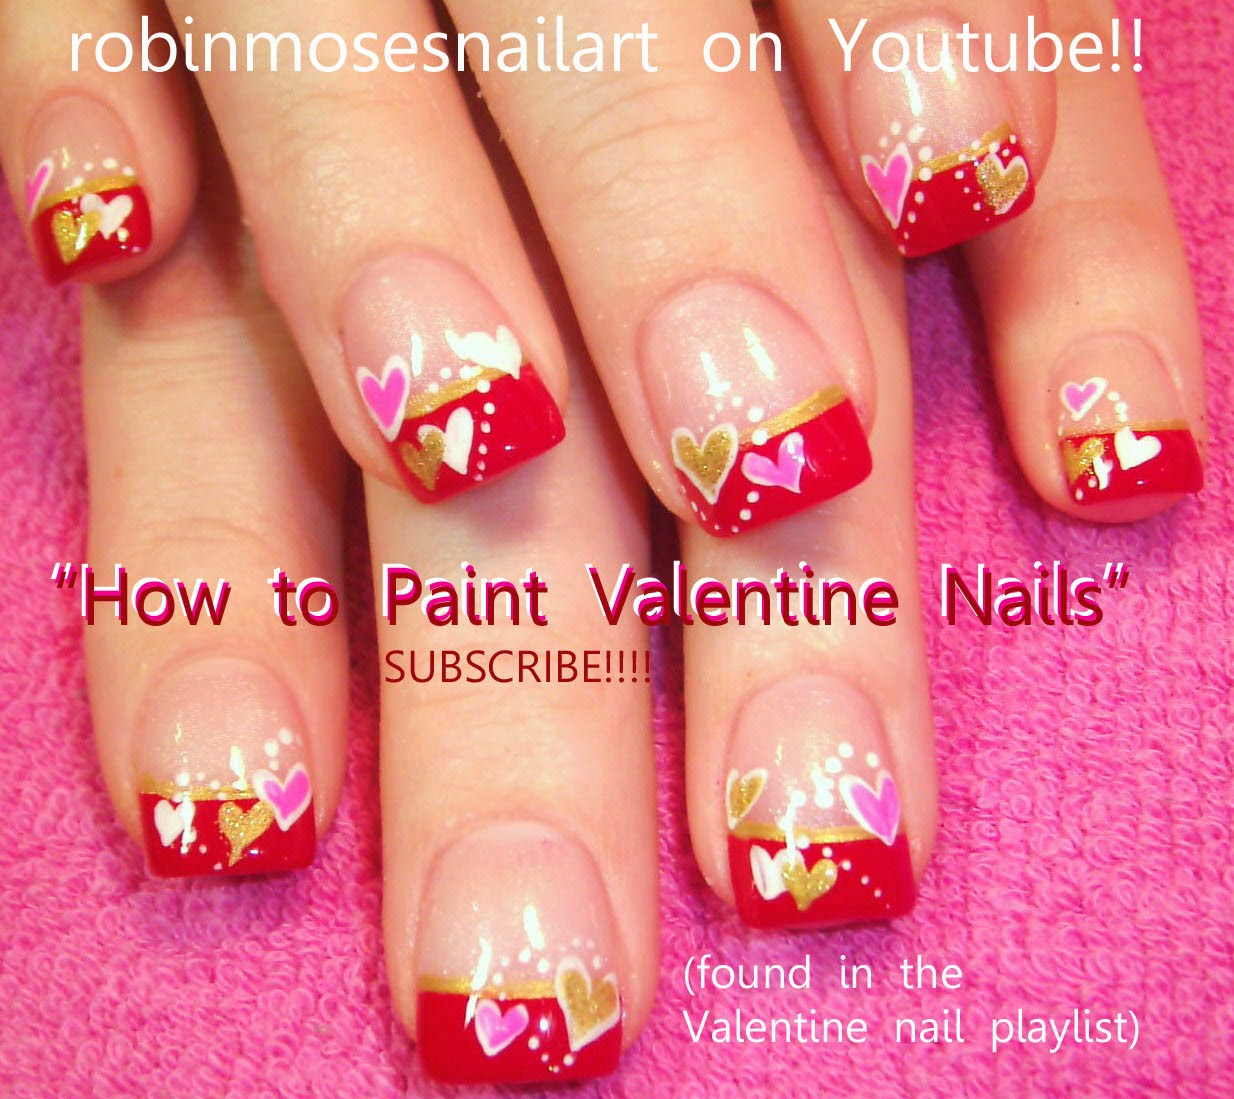 Robin moses nail art valentine nails cute valentine nails dead cupid nail art valentine nails to learn here valentine playlist prinsesfo Images